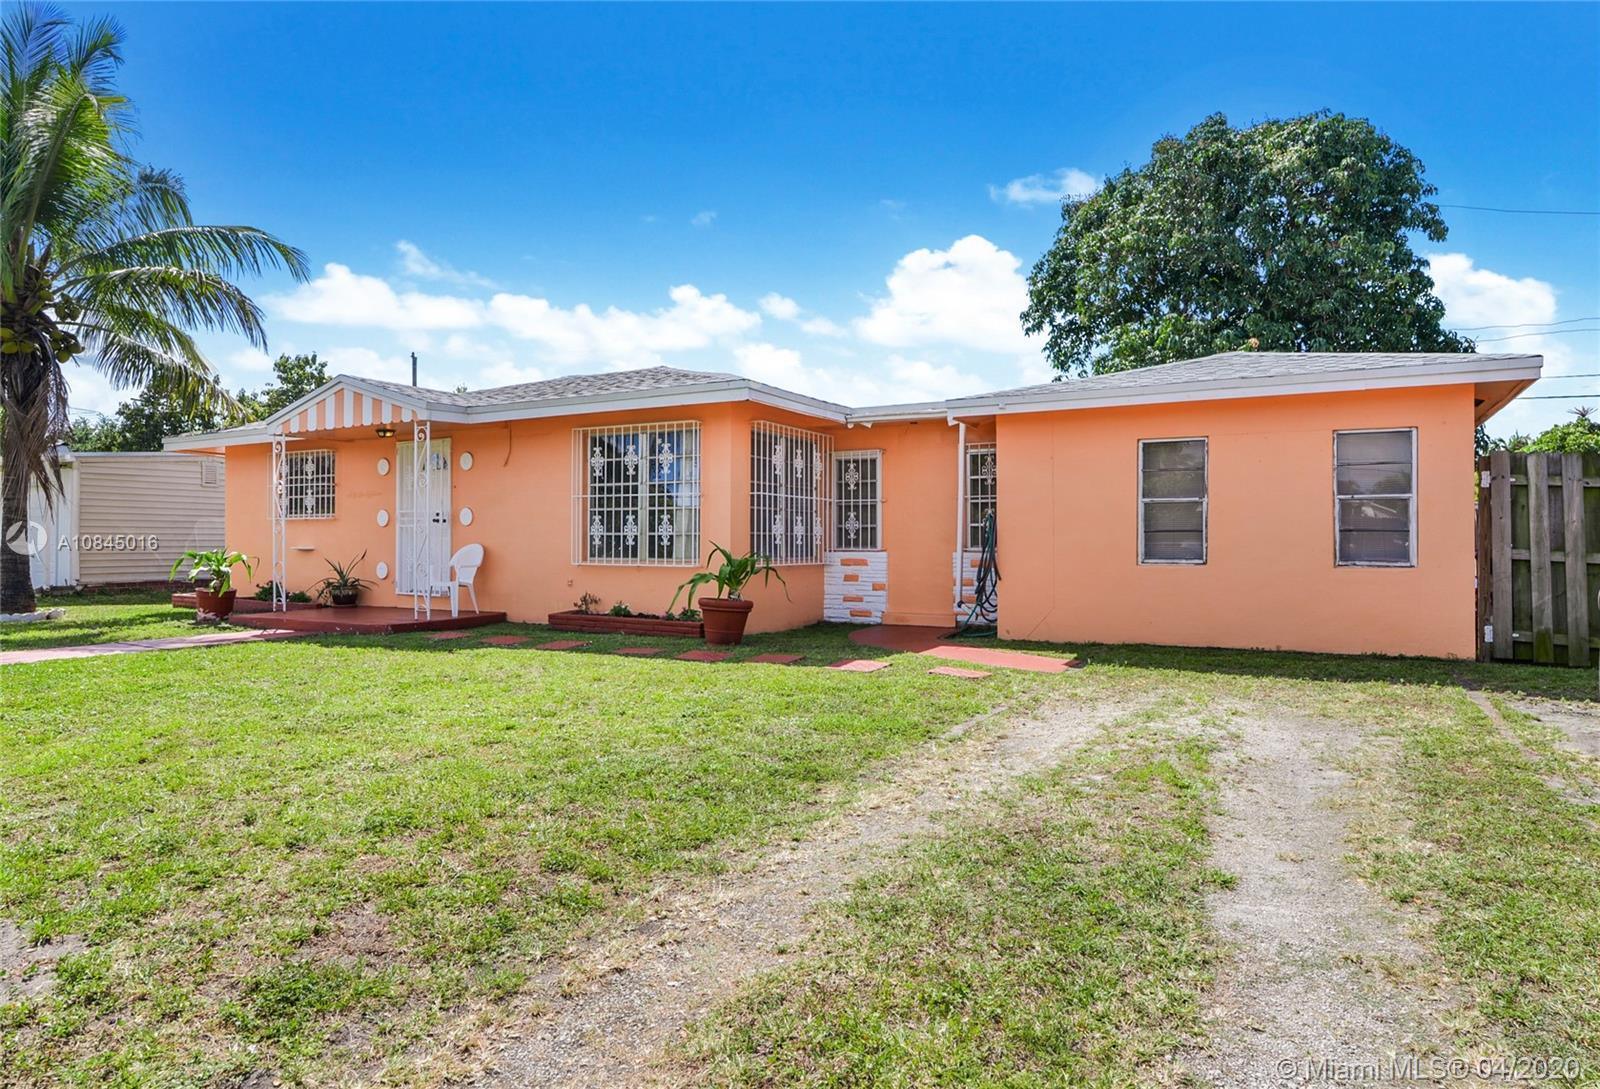 Great Starter Single Family Home with NO association and a Very Generous Lot. Stop renting, and own